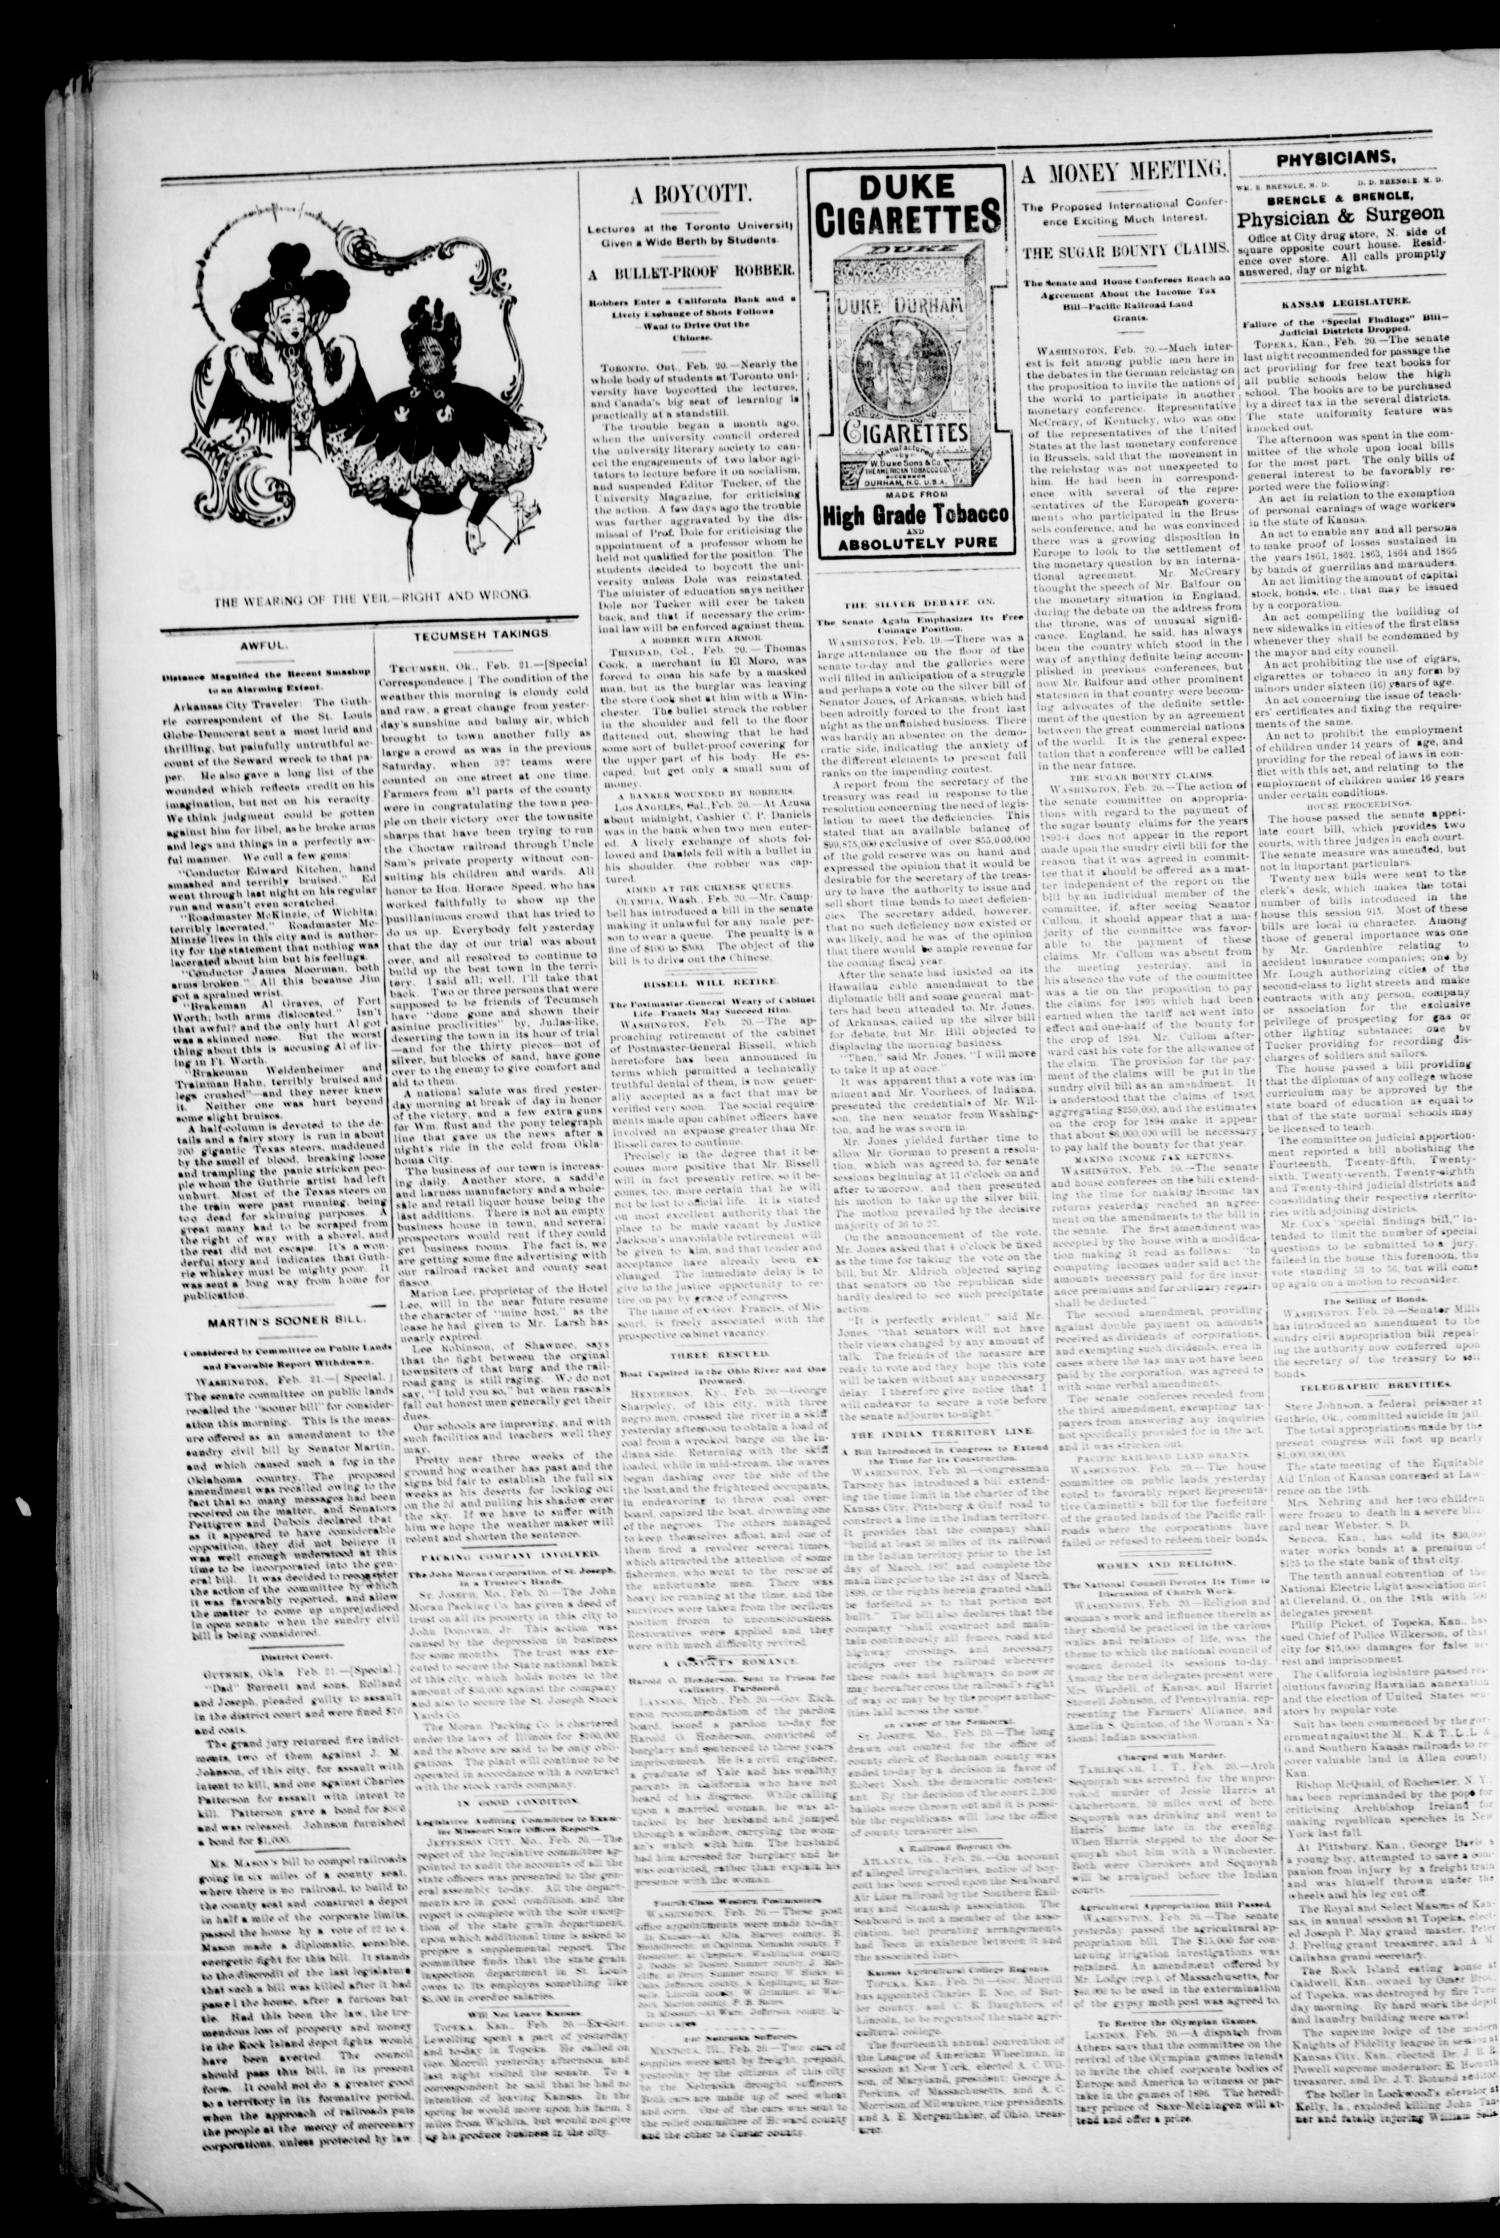 The Perry Daily Times. (Perry, Okla.), Vol. 2, No. 129, Ed. 1 Thursday, February 21, 1895                                                                                                      [Sequence #]: 4 of 4